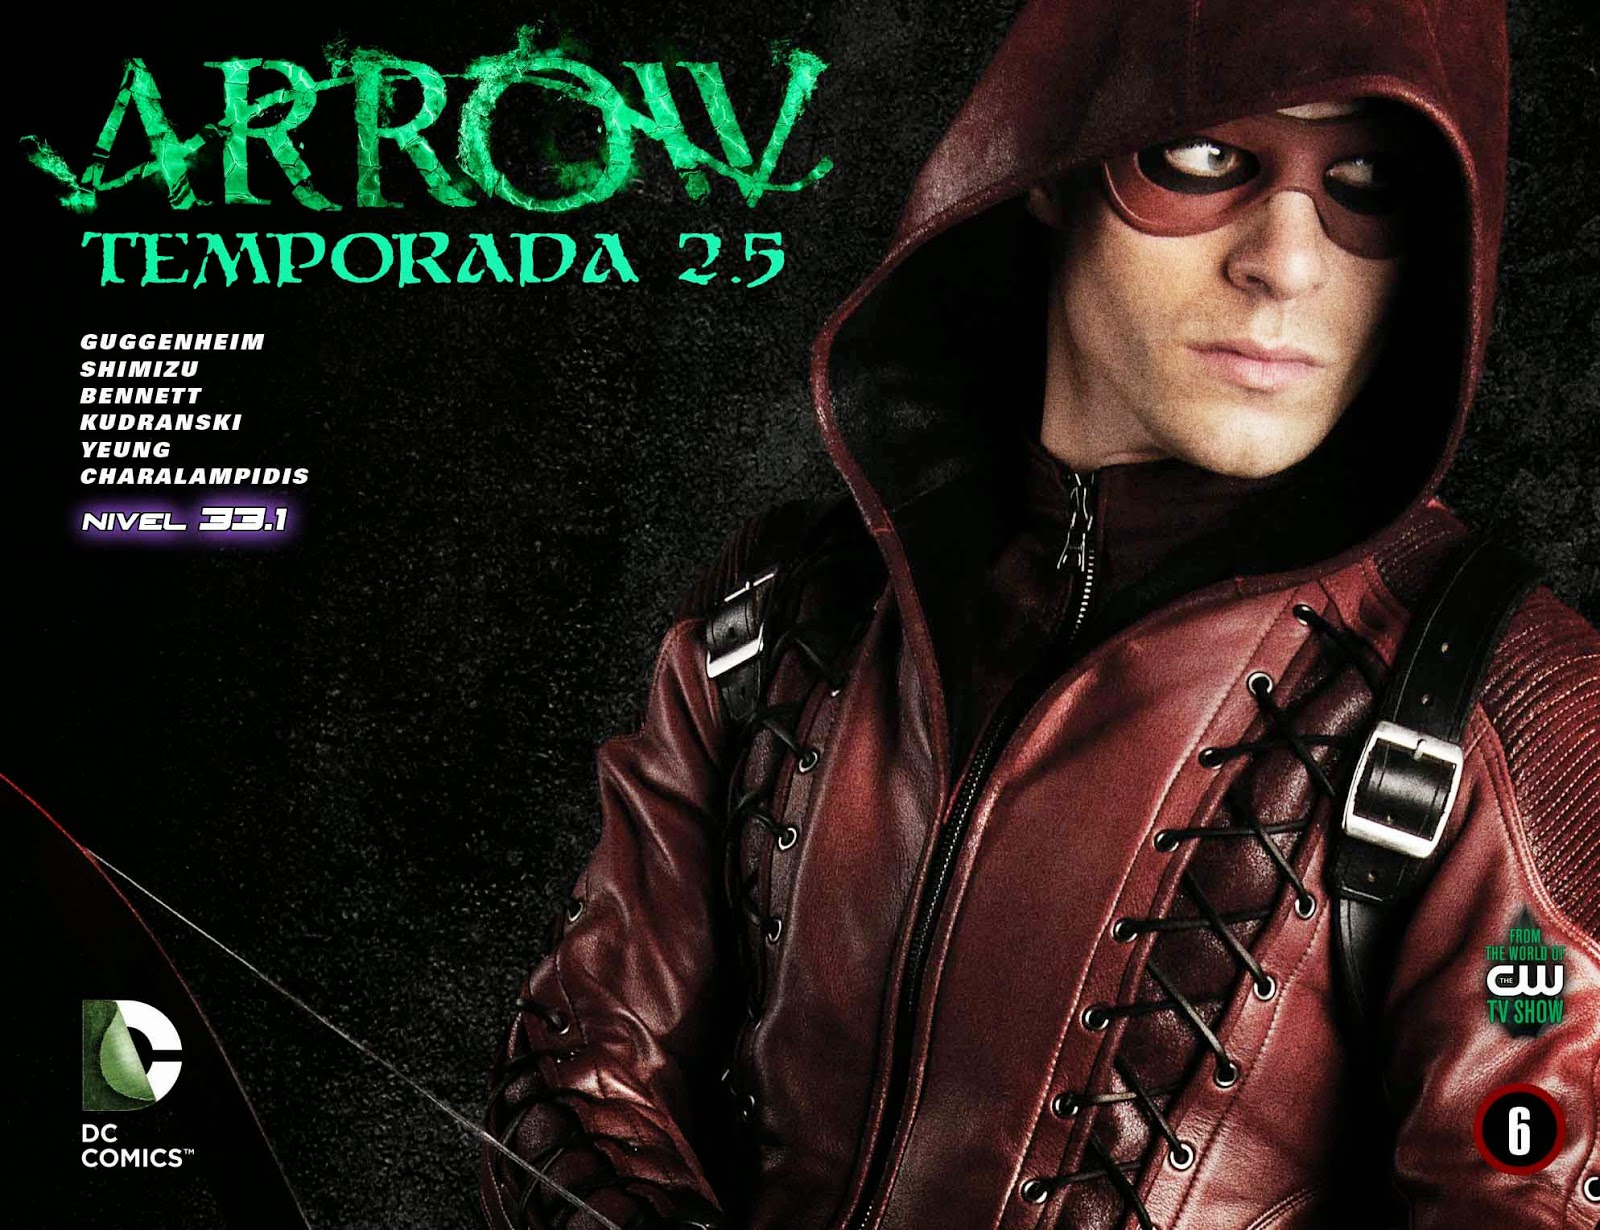 http://www.mediafire.com/download/urvd6p2c9dob64r/arrow+6.cbr